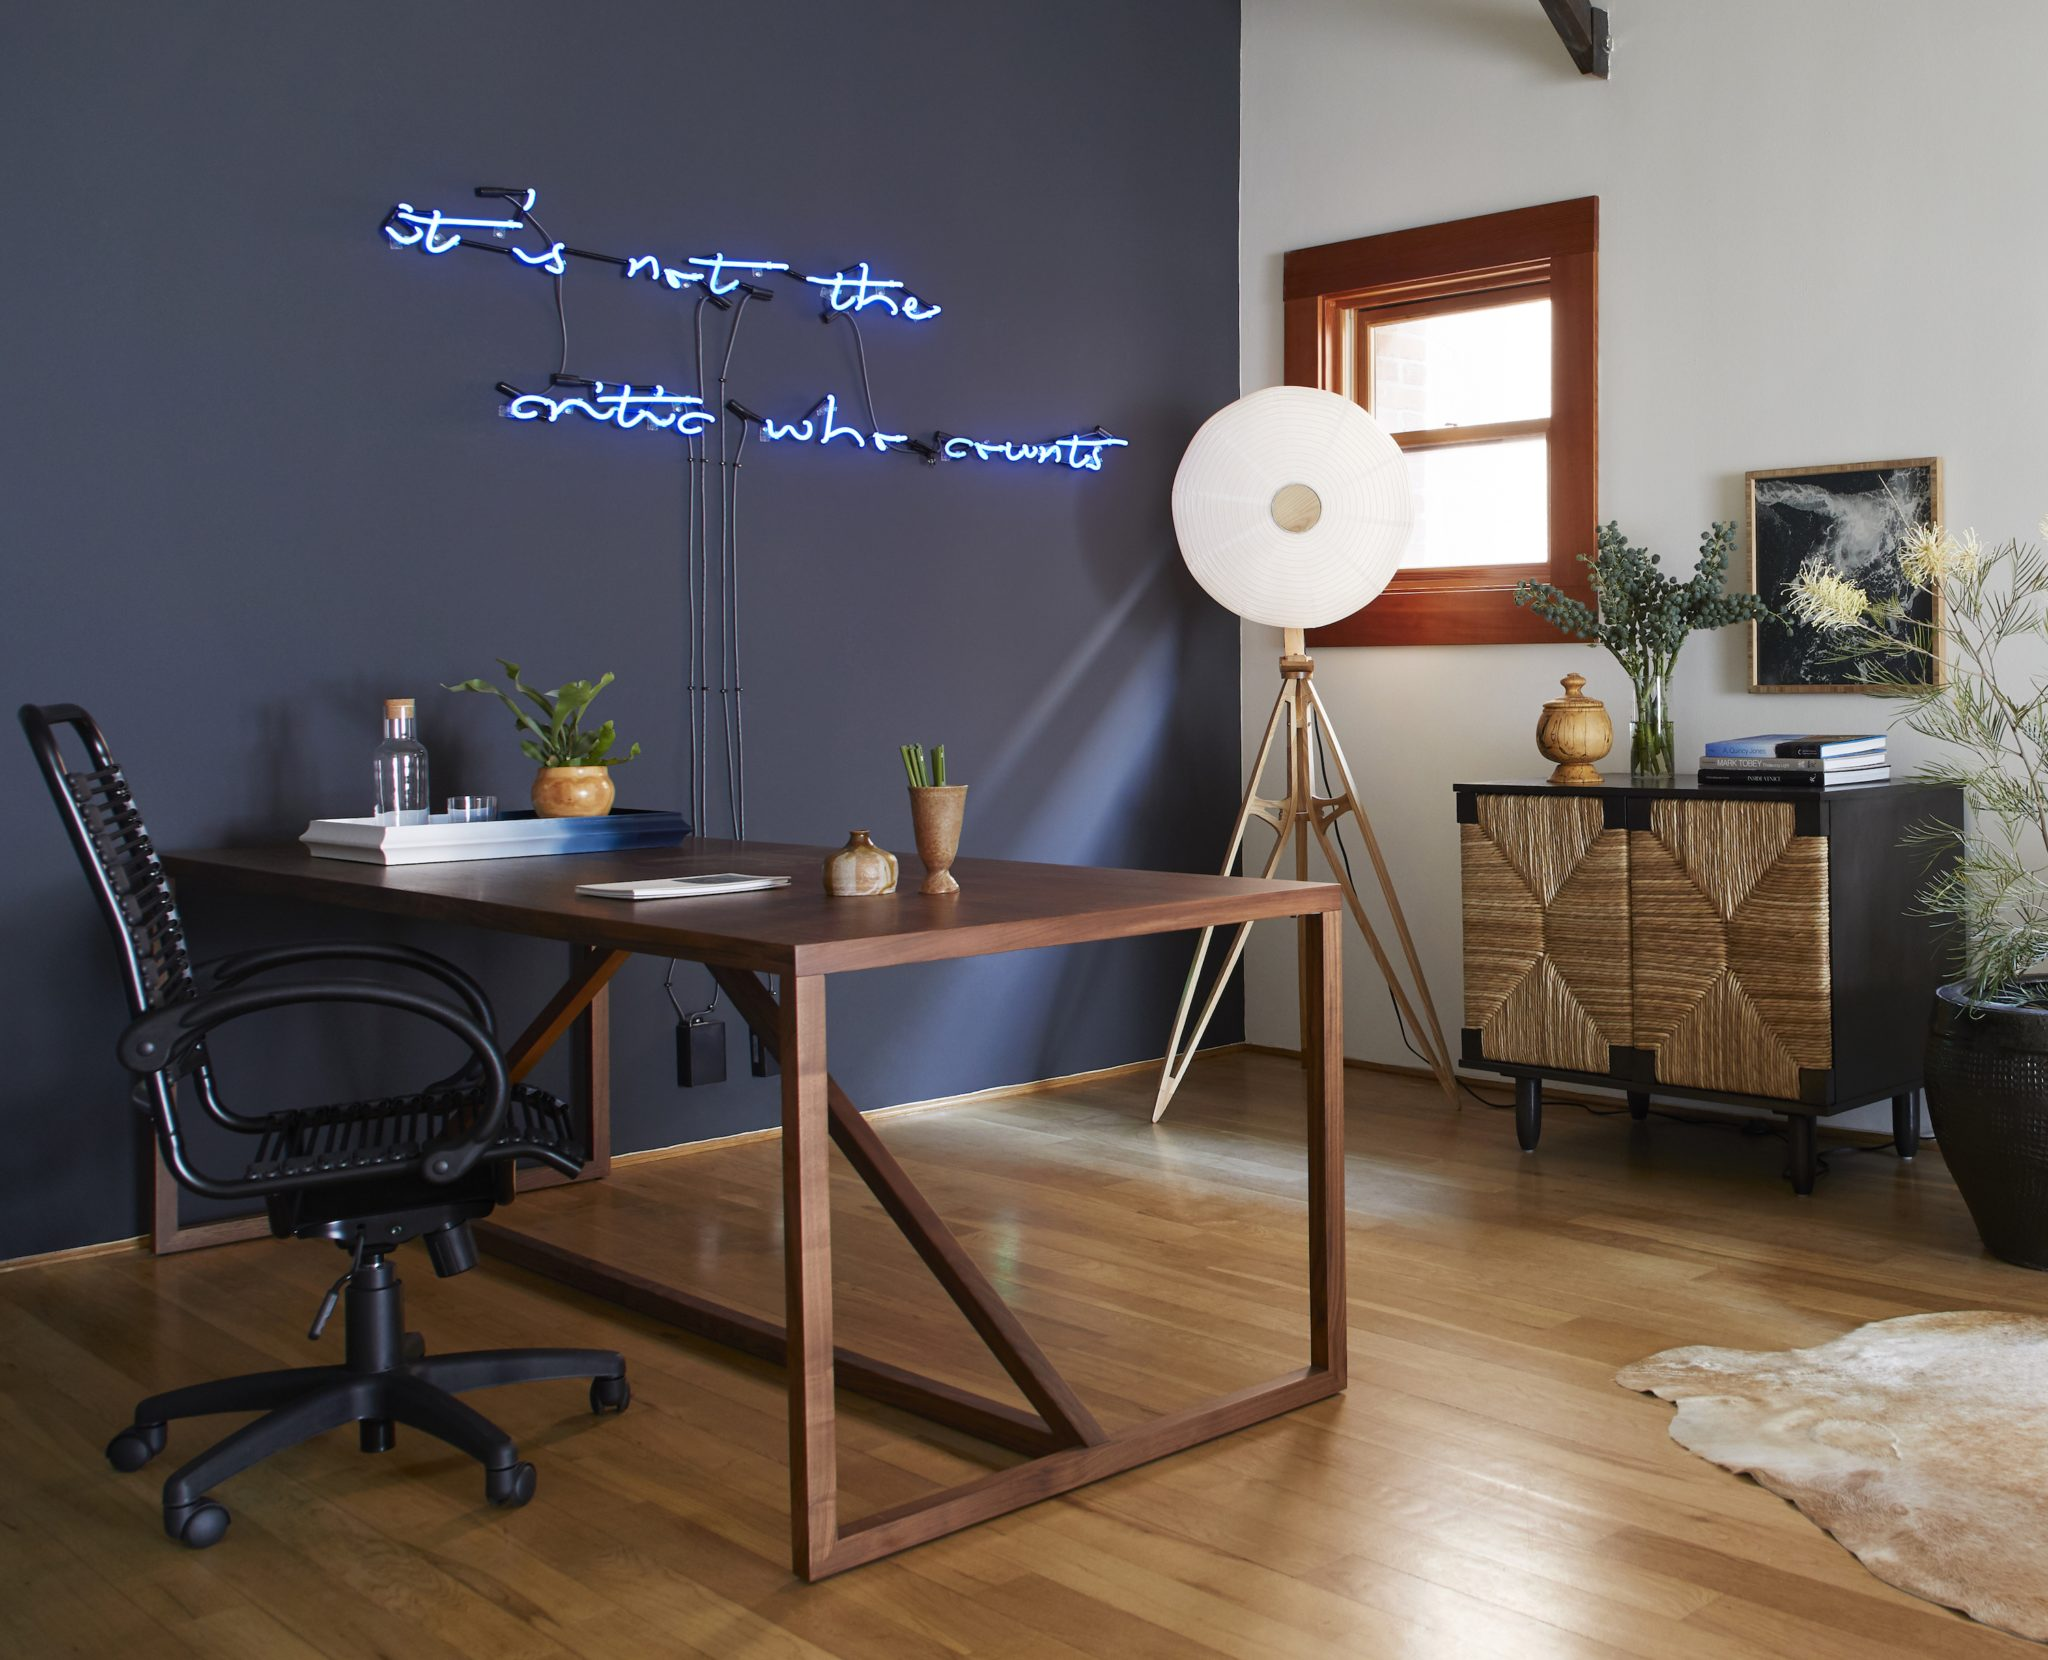 Office in Venice Beach with Neon Accent and Navy Wall by Stefani Stein Inc.